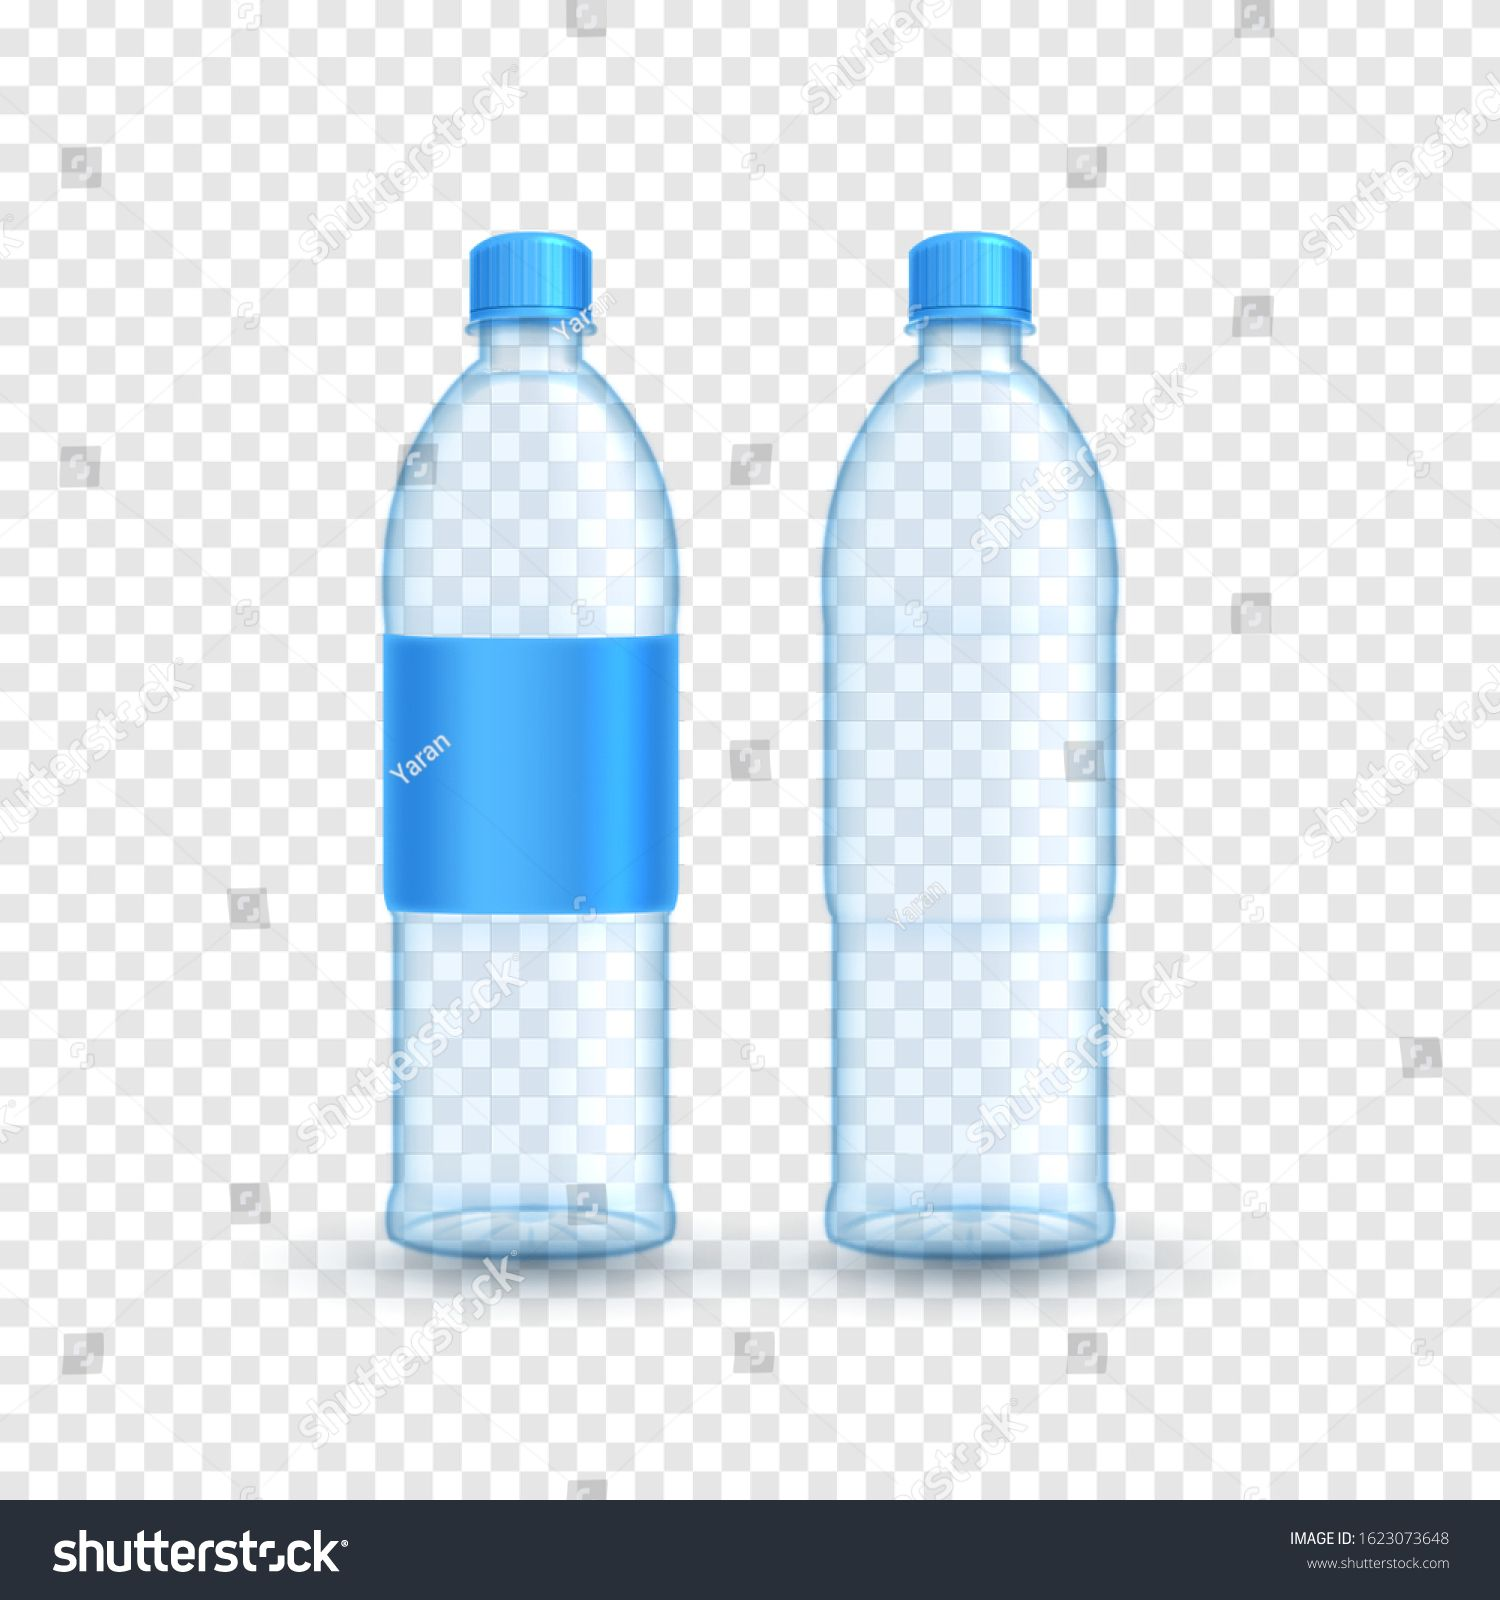 Realistic Plastic Bottle Templates Vector Illustration With 3d Transparent Bottle With Water And Blue Blank Gray Background Blank Stickers Illustration Design